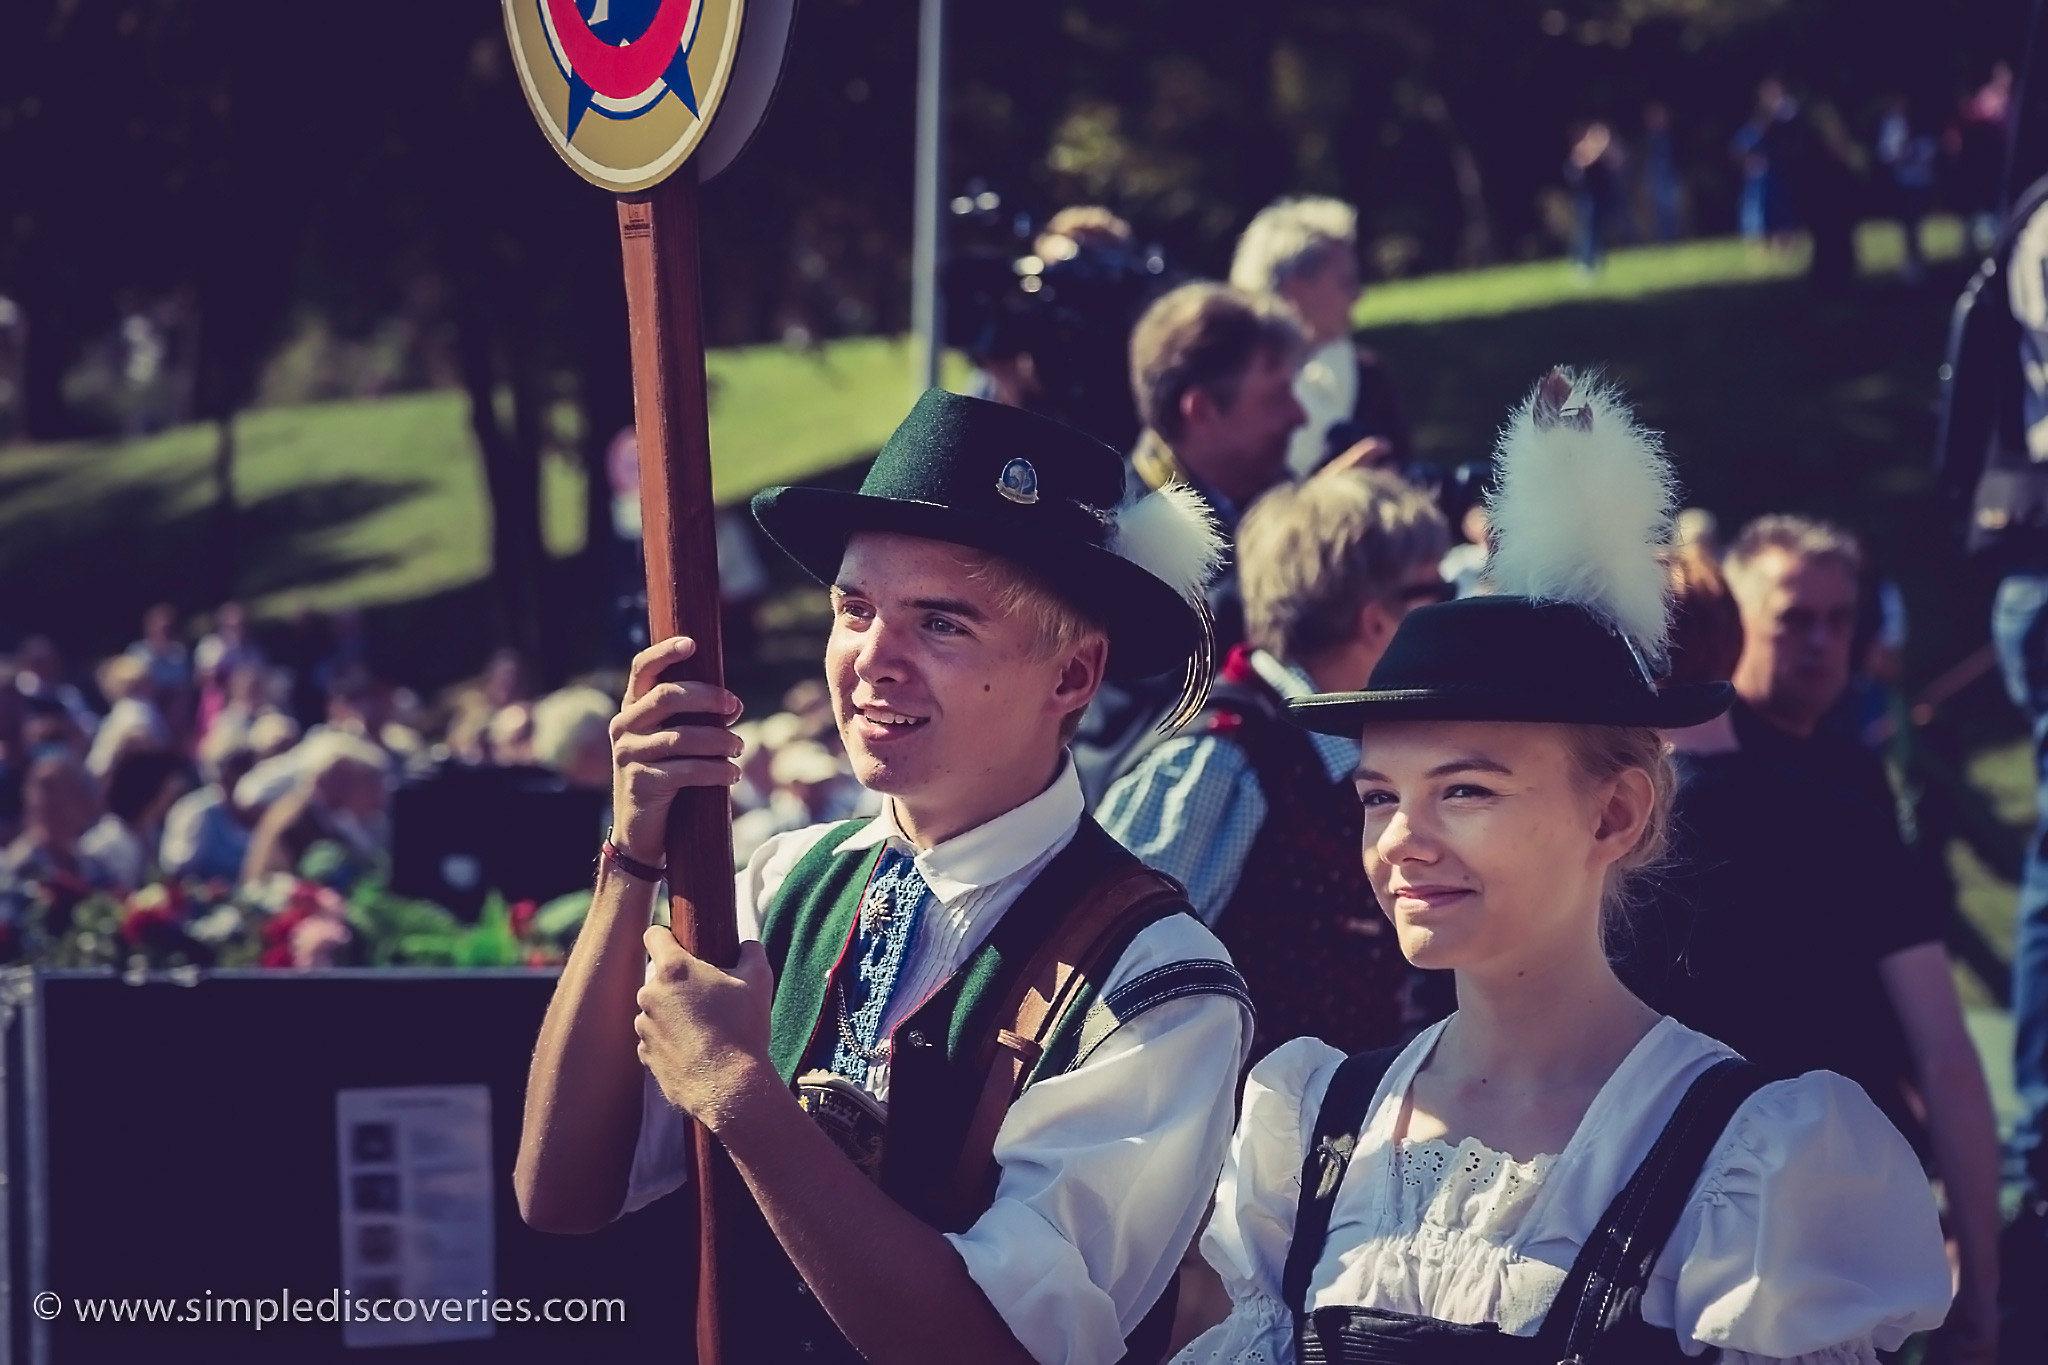 oktoberfest_battle_of_bands_munich